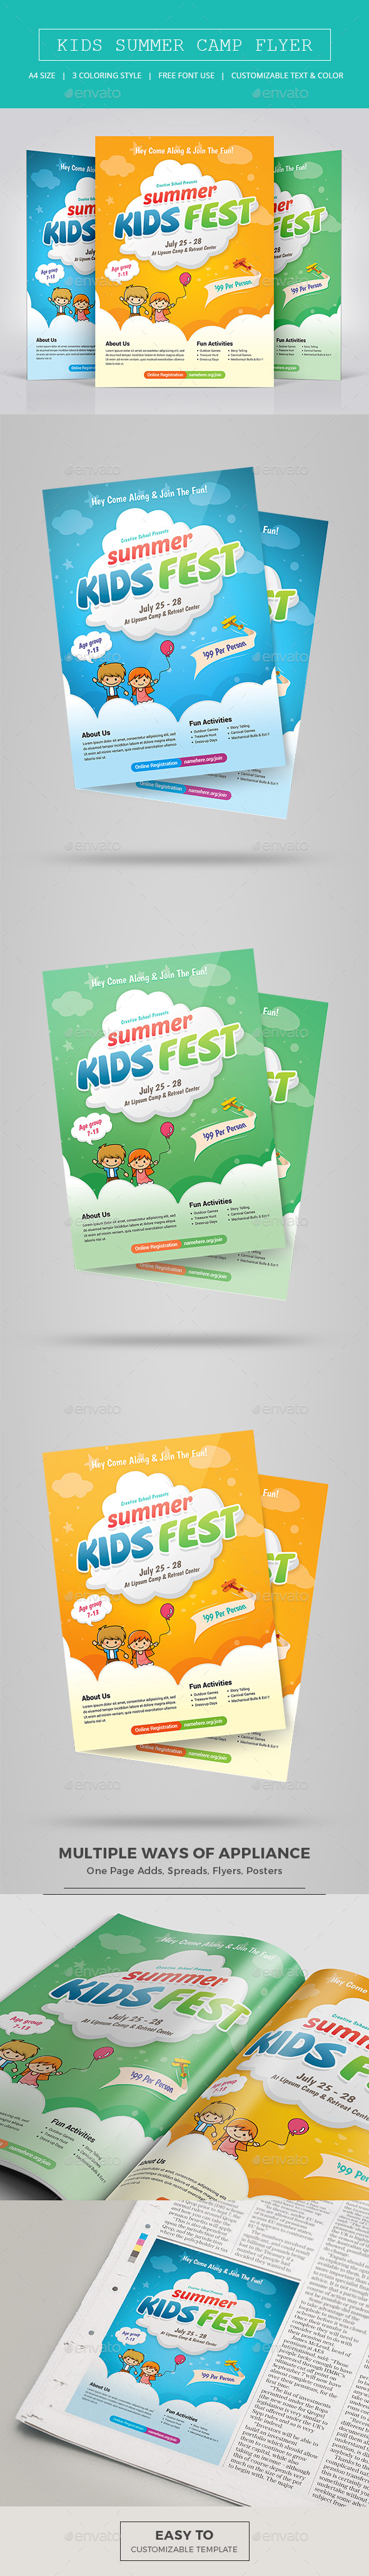 Kids Summer Camp Flyer Graphics Designs Templates - Summer camp brochure template